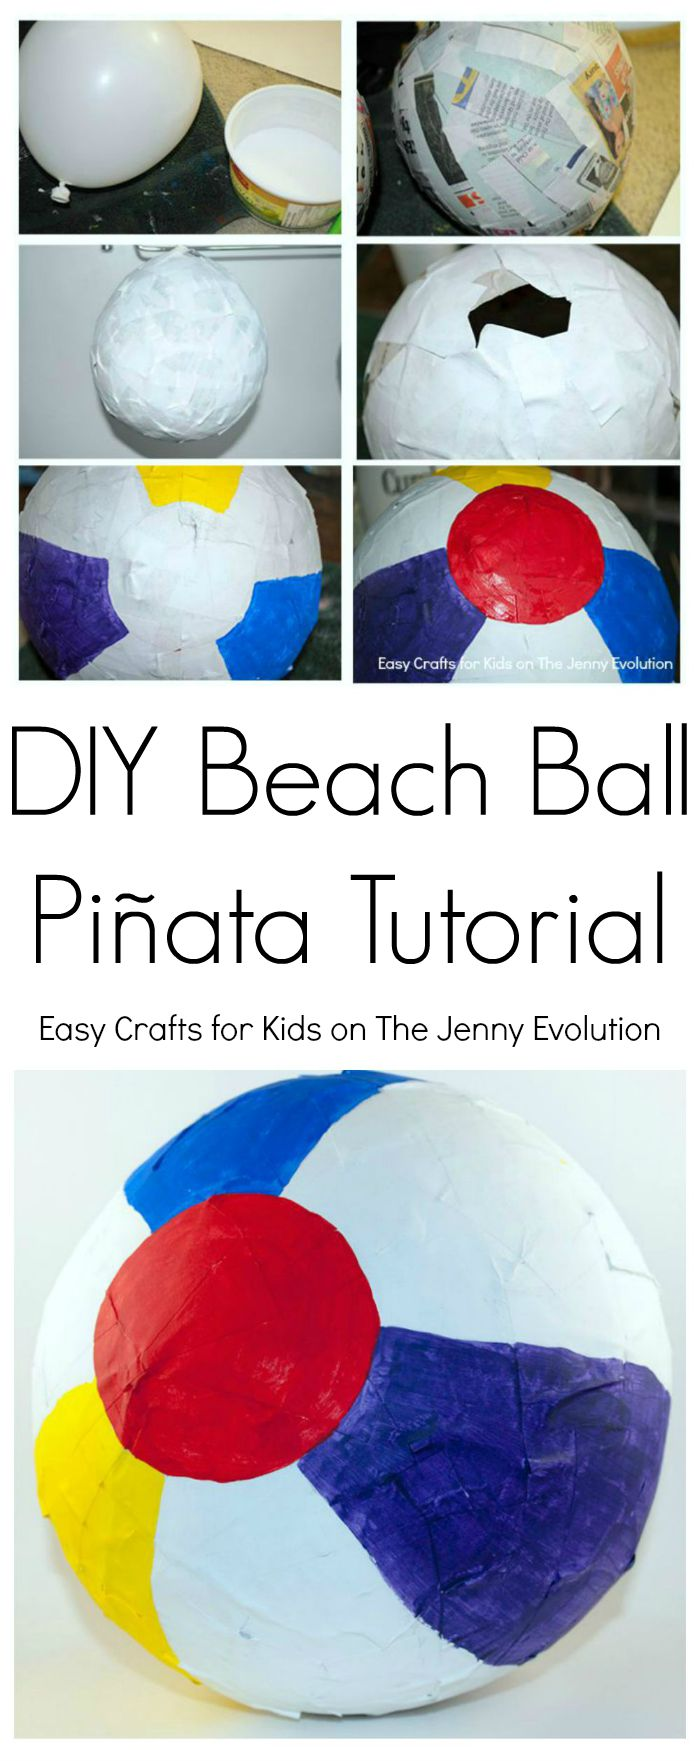 DIY Beach Ball Pinata Tutorial